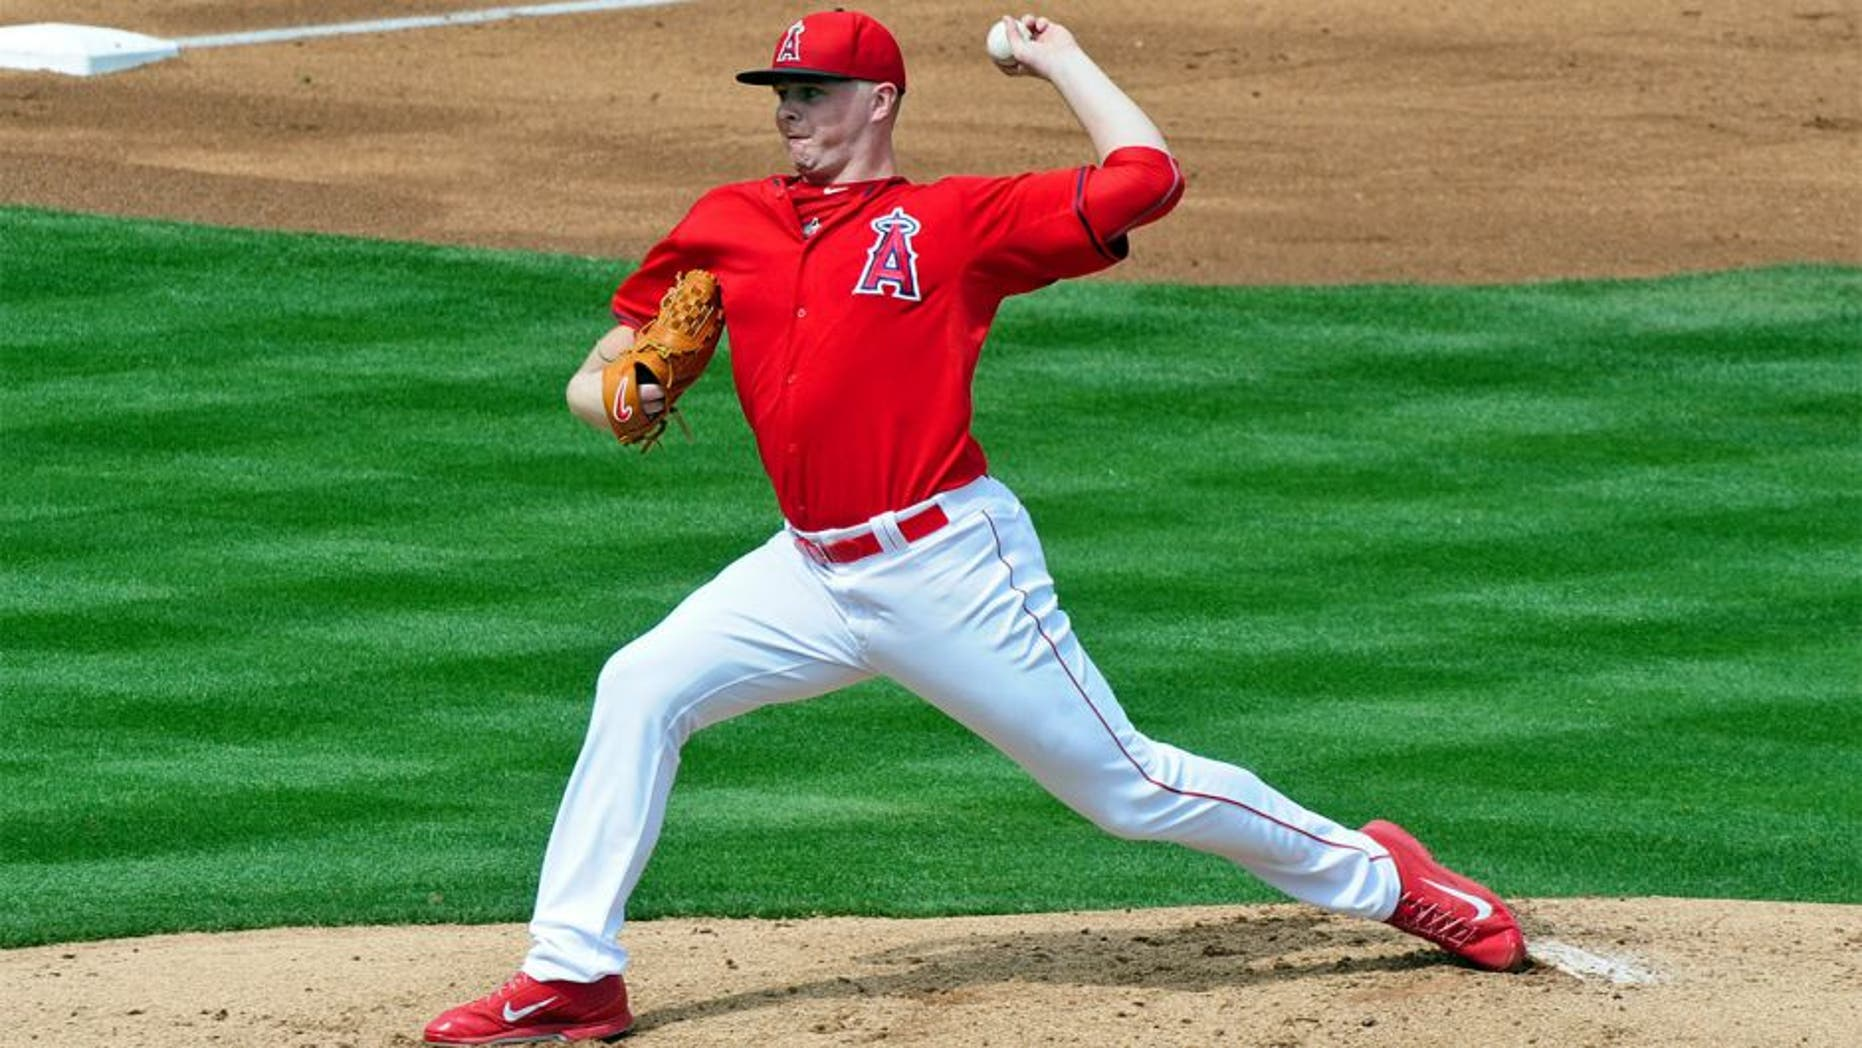 Mar 12, 2015; Tempe, AZ, USA; Los Angeles Angels starting pitcher Sean Newcomb (86) throws in the first inning against the Chicago Cubs at Tempe Diablo Stadium. Mandatory Credit: Matt Kartozian-USA TODAY Sports